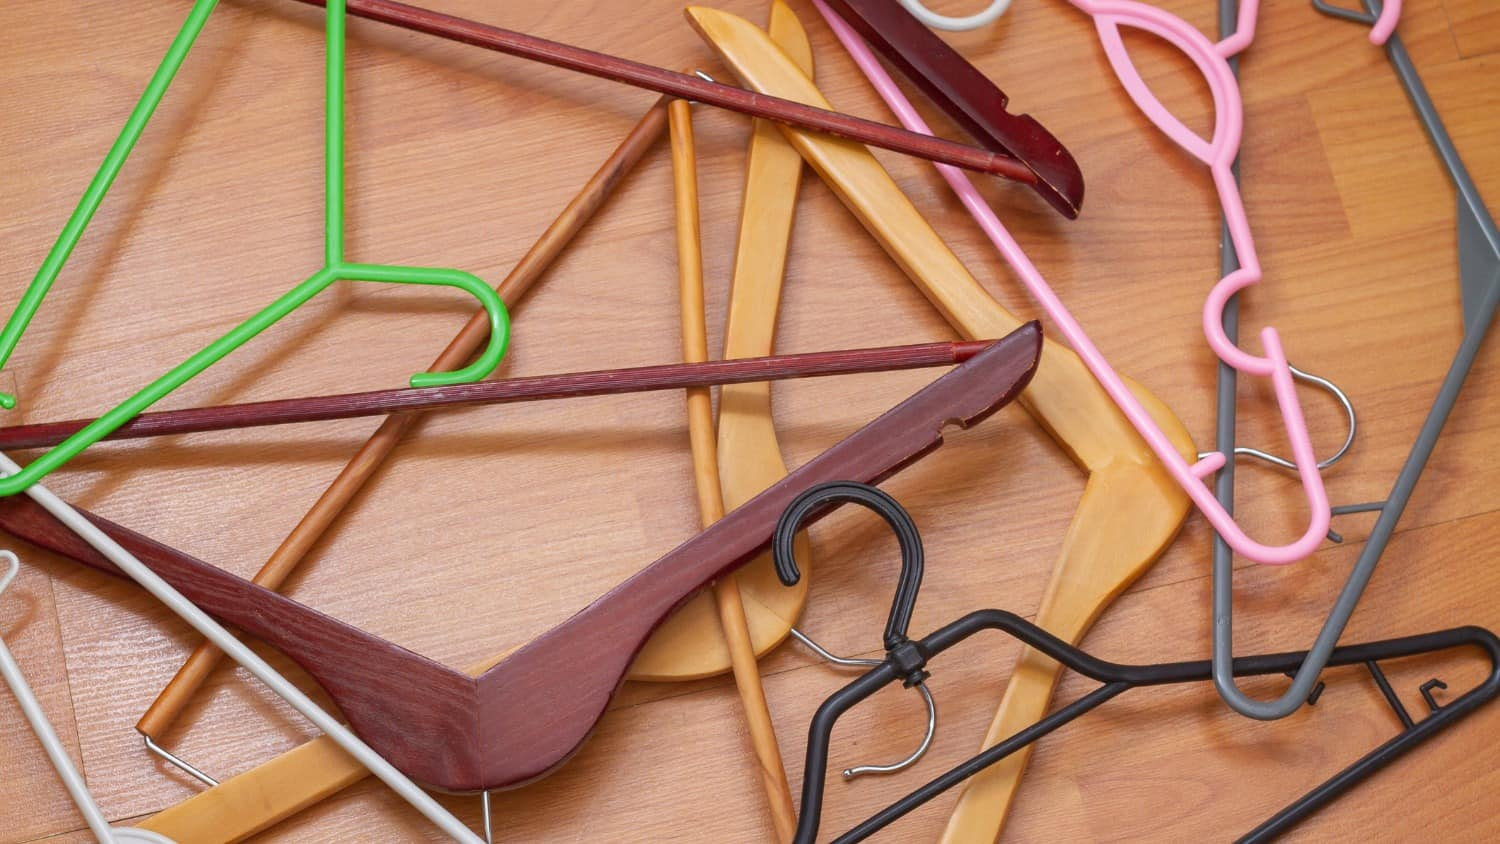 Why Choosing the Right Hangers Can Be a Game Changer